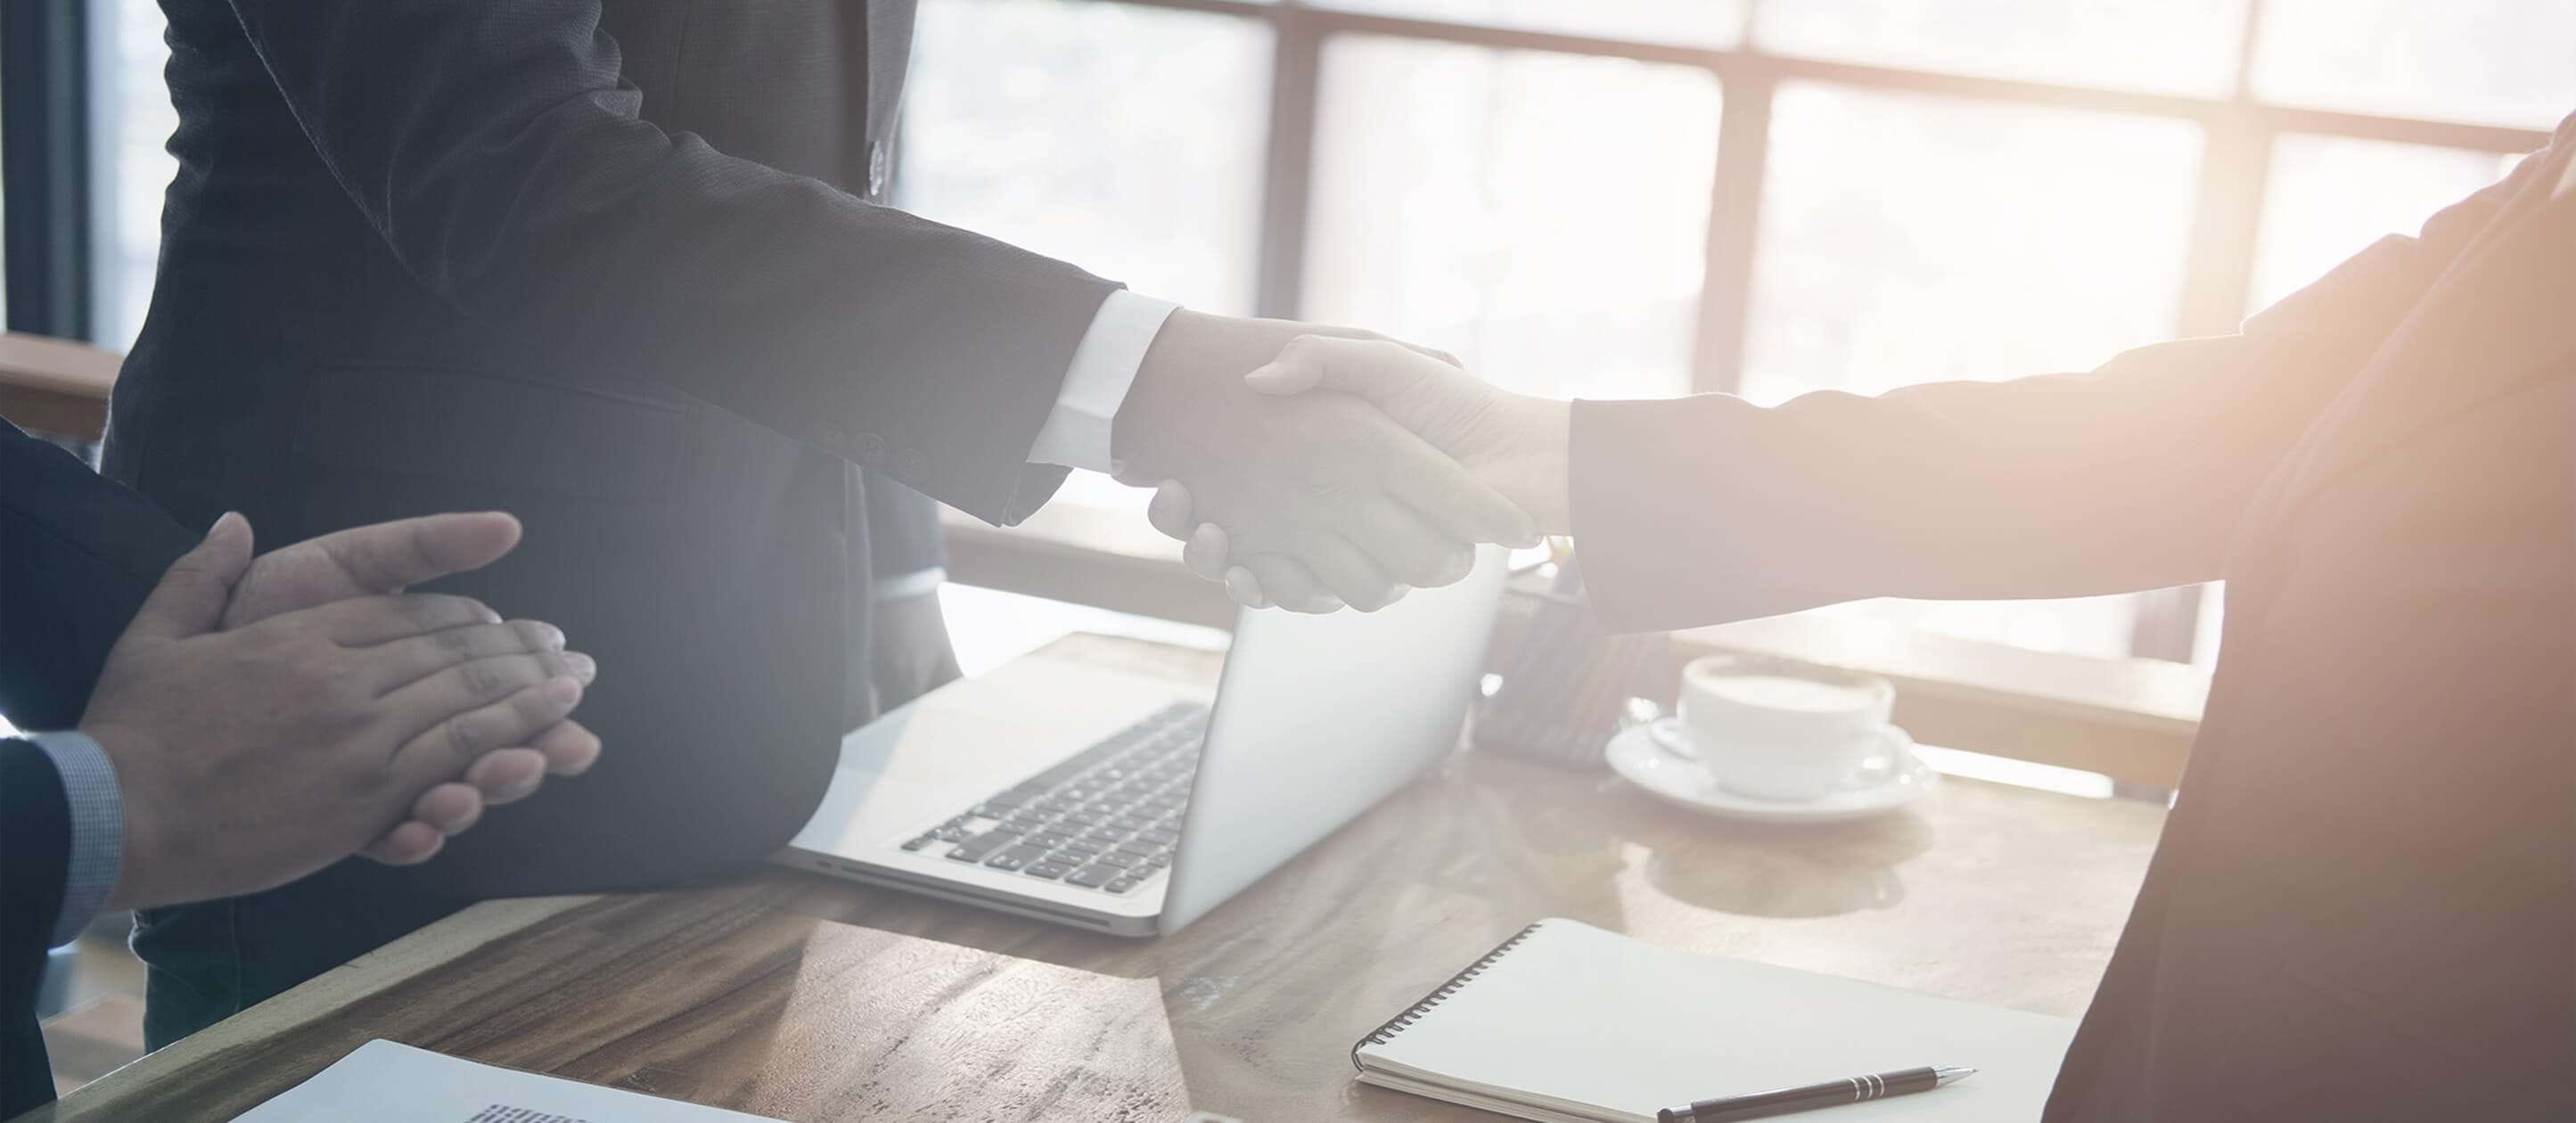 Image of two business persons shaking hands